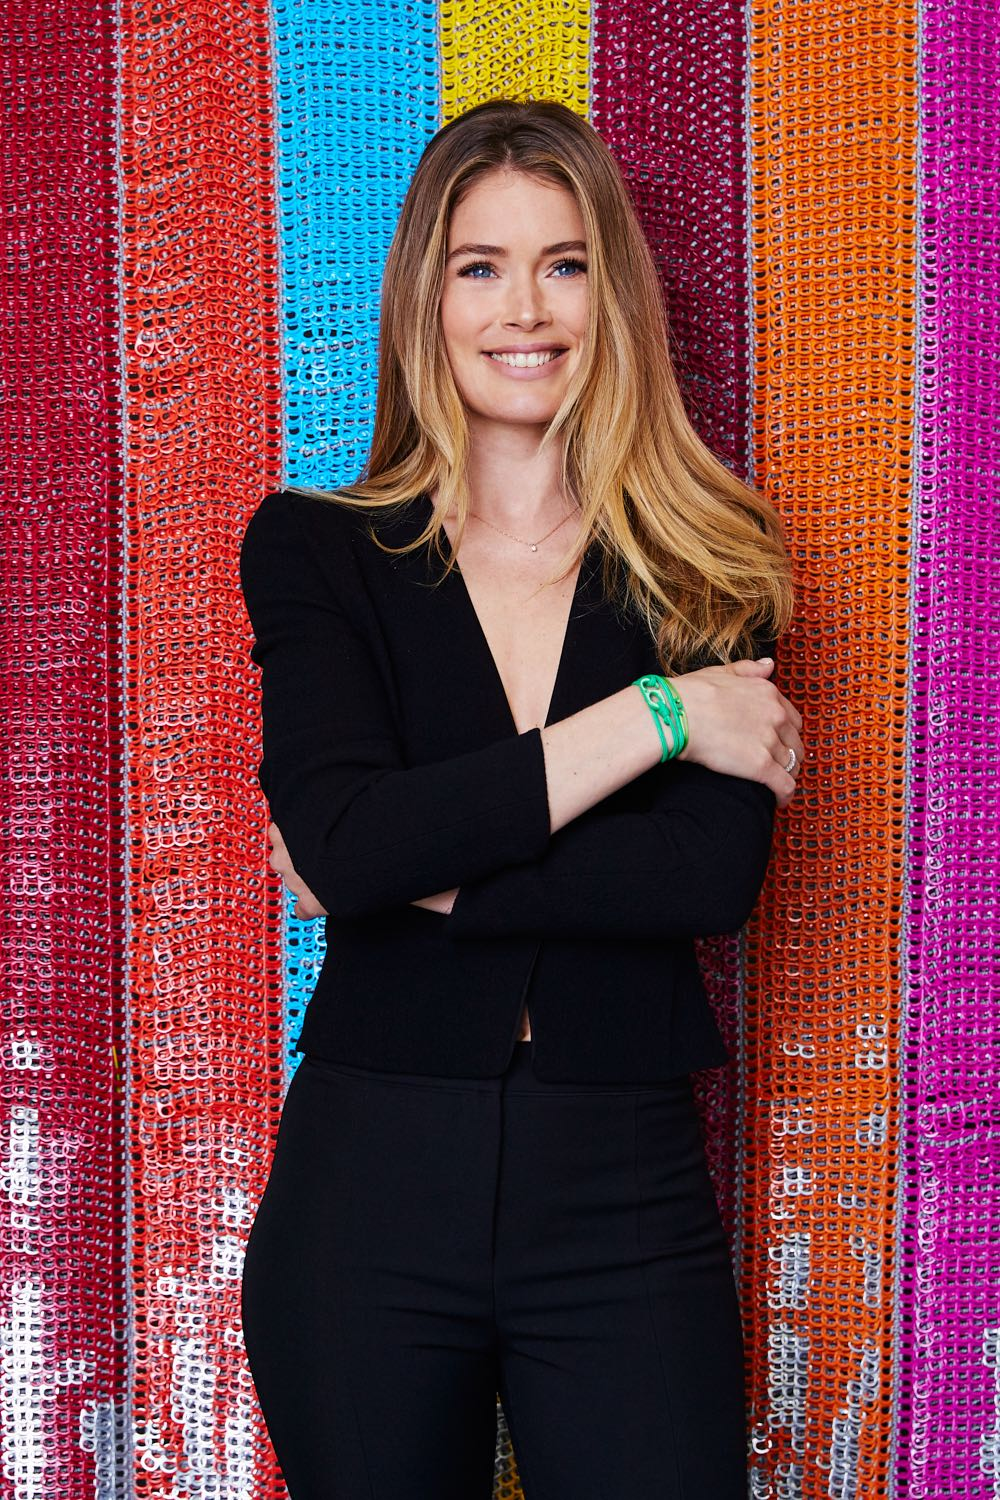 Key Life on Land ambassadors launching  Goal 15: Life on Land  on World Earth Day include supermodel Doutzen Kroes.